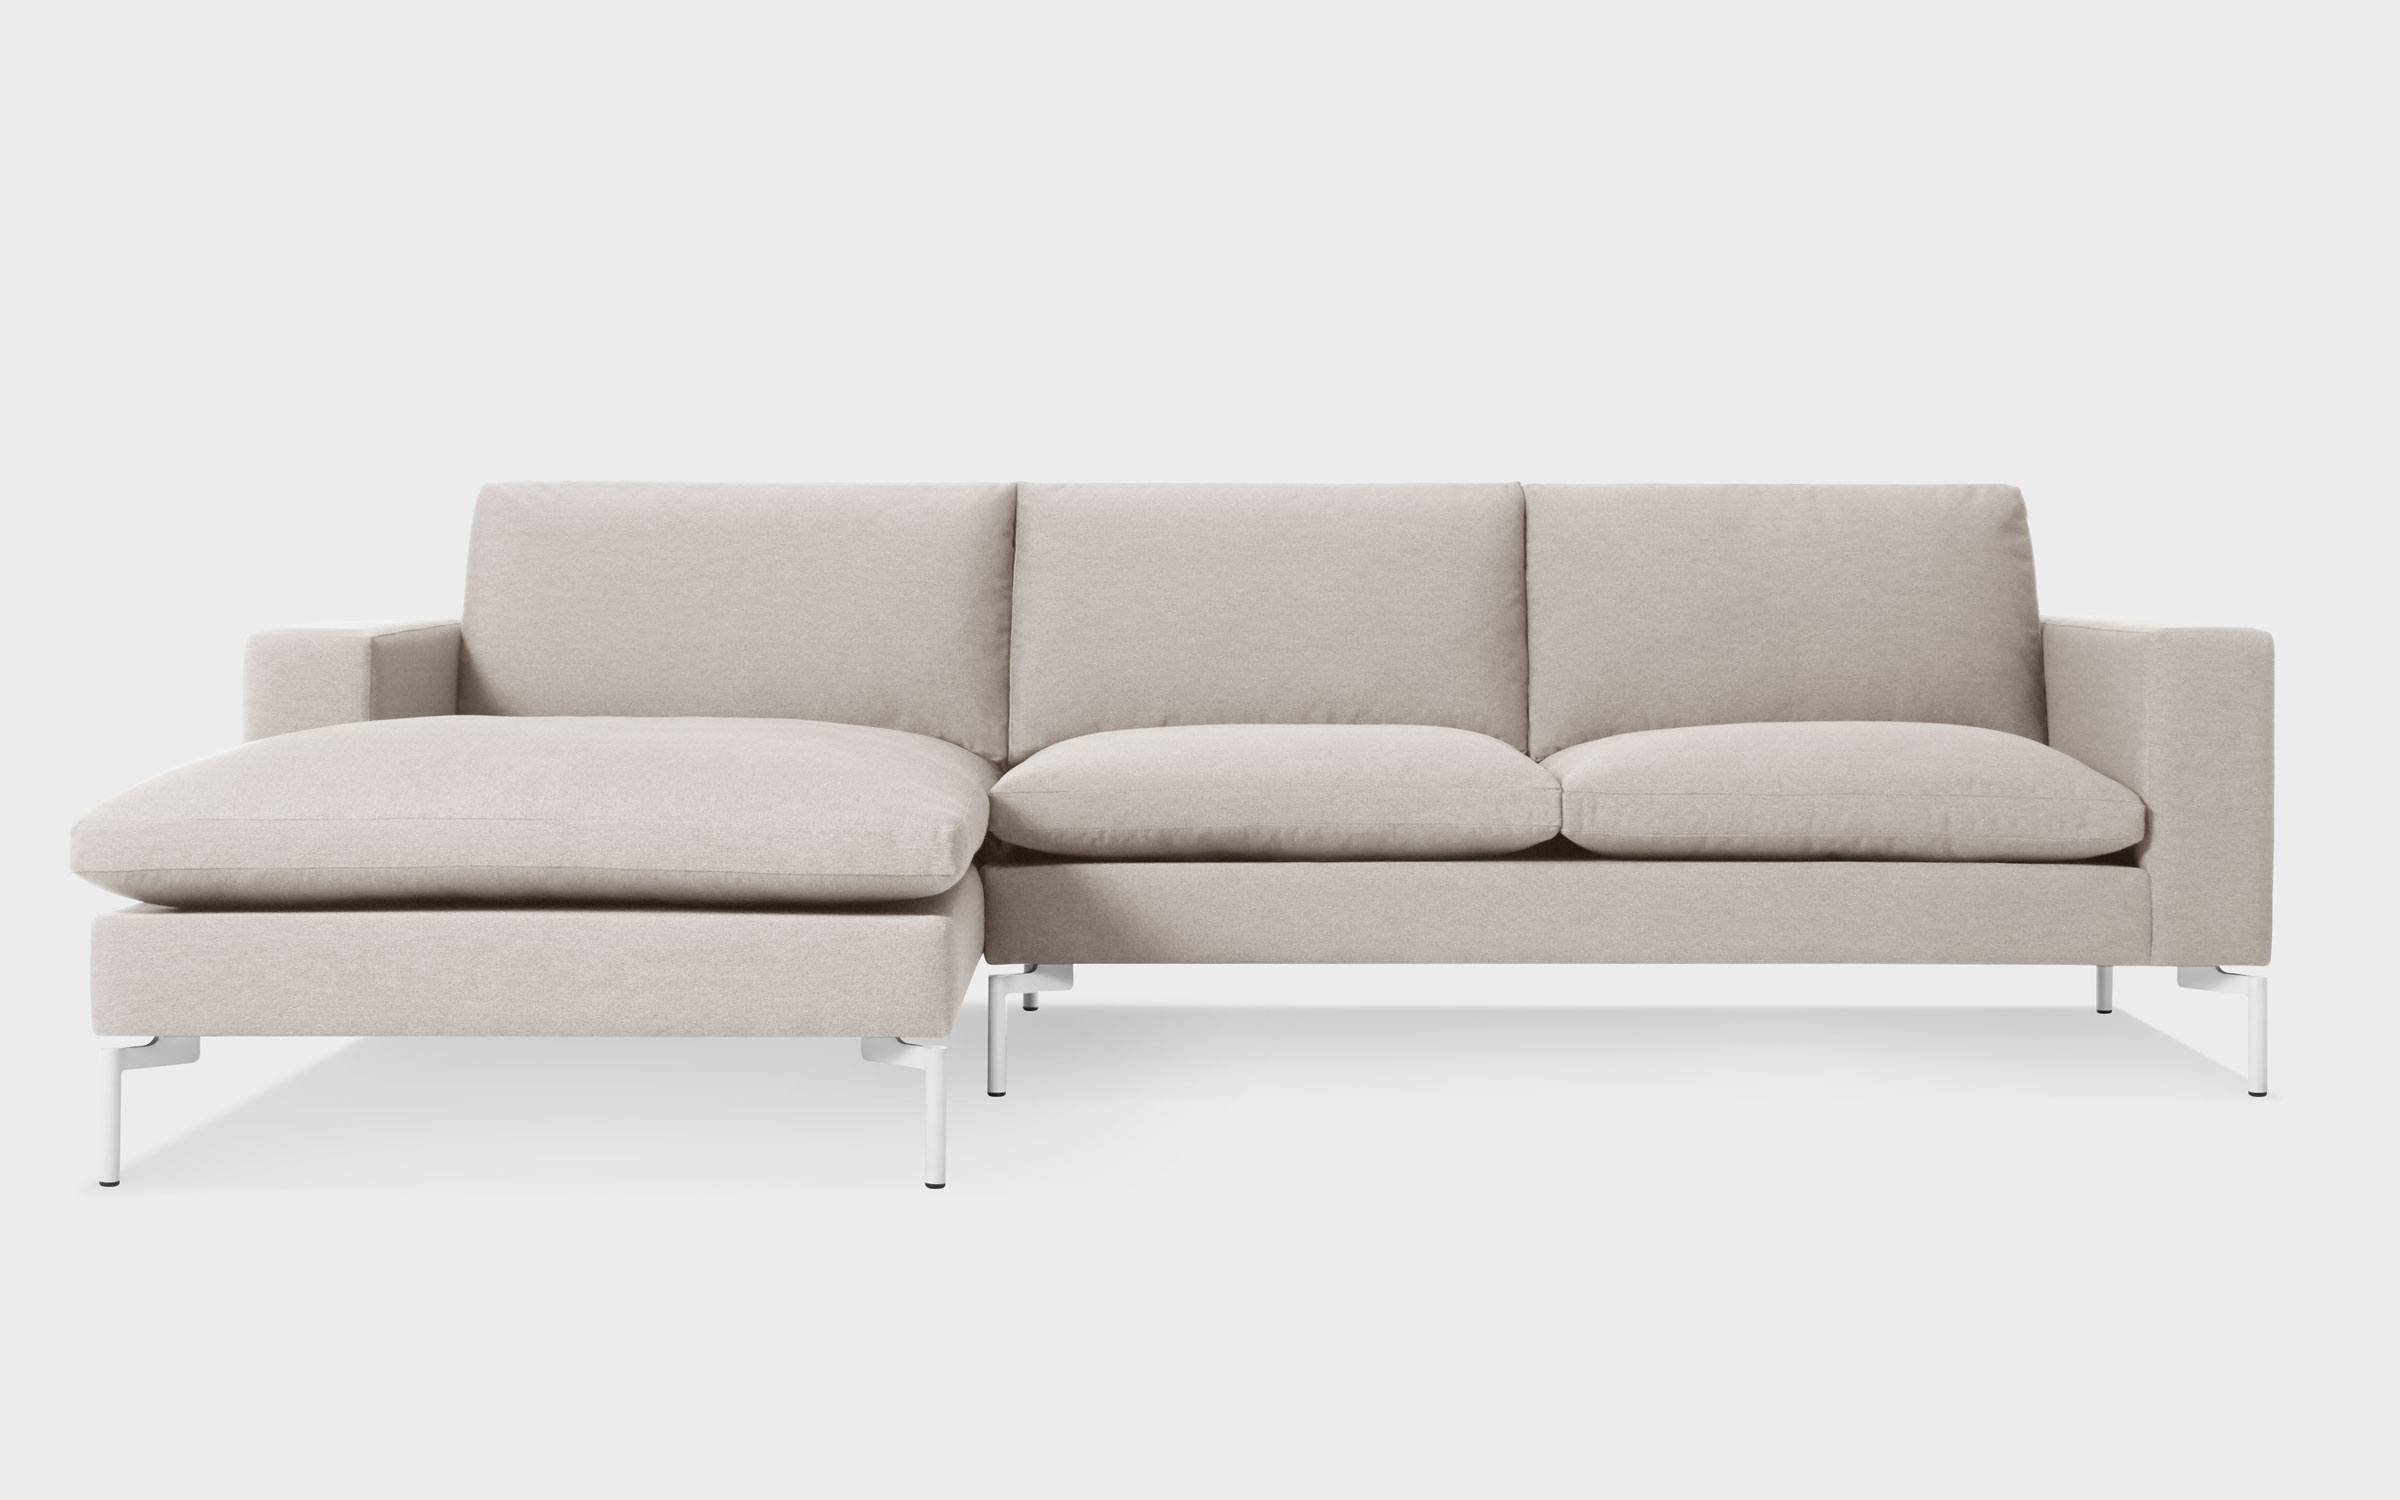 Most Popular New Standard Modern Fabric Sofa W/ Right Chaise (View 5 of 15)